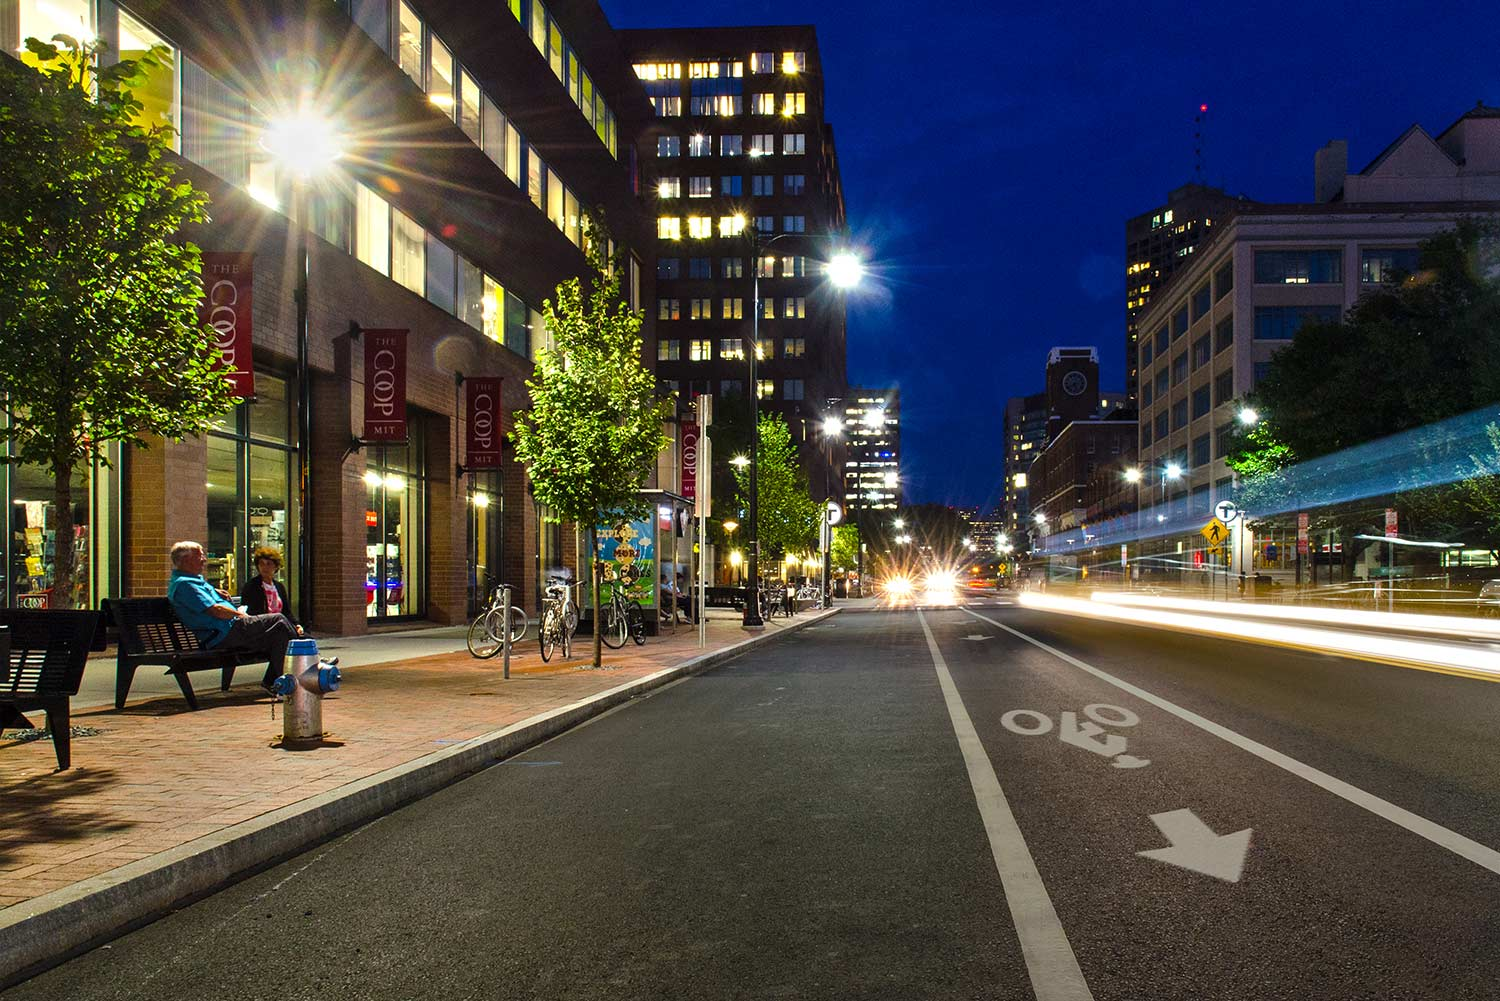 Kendall-Square_complete-streets-bike-lane-evening-streetscape_Klopfer-Martin.jpg